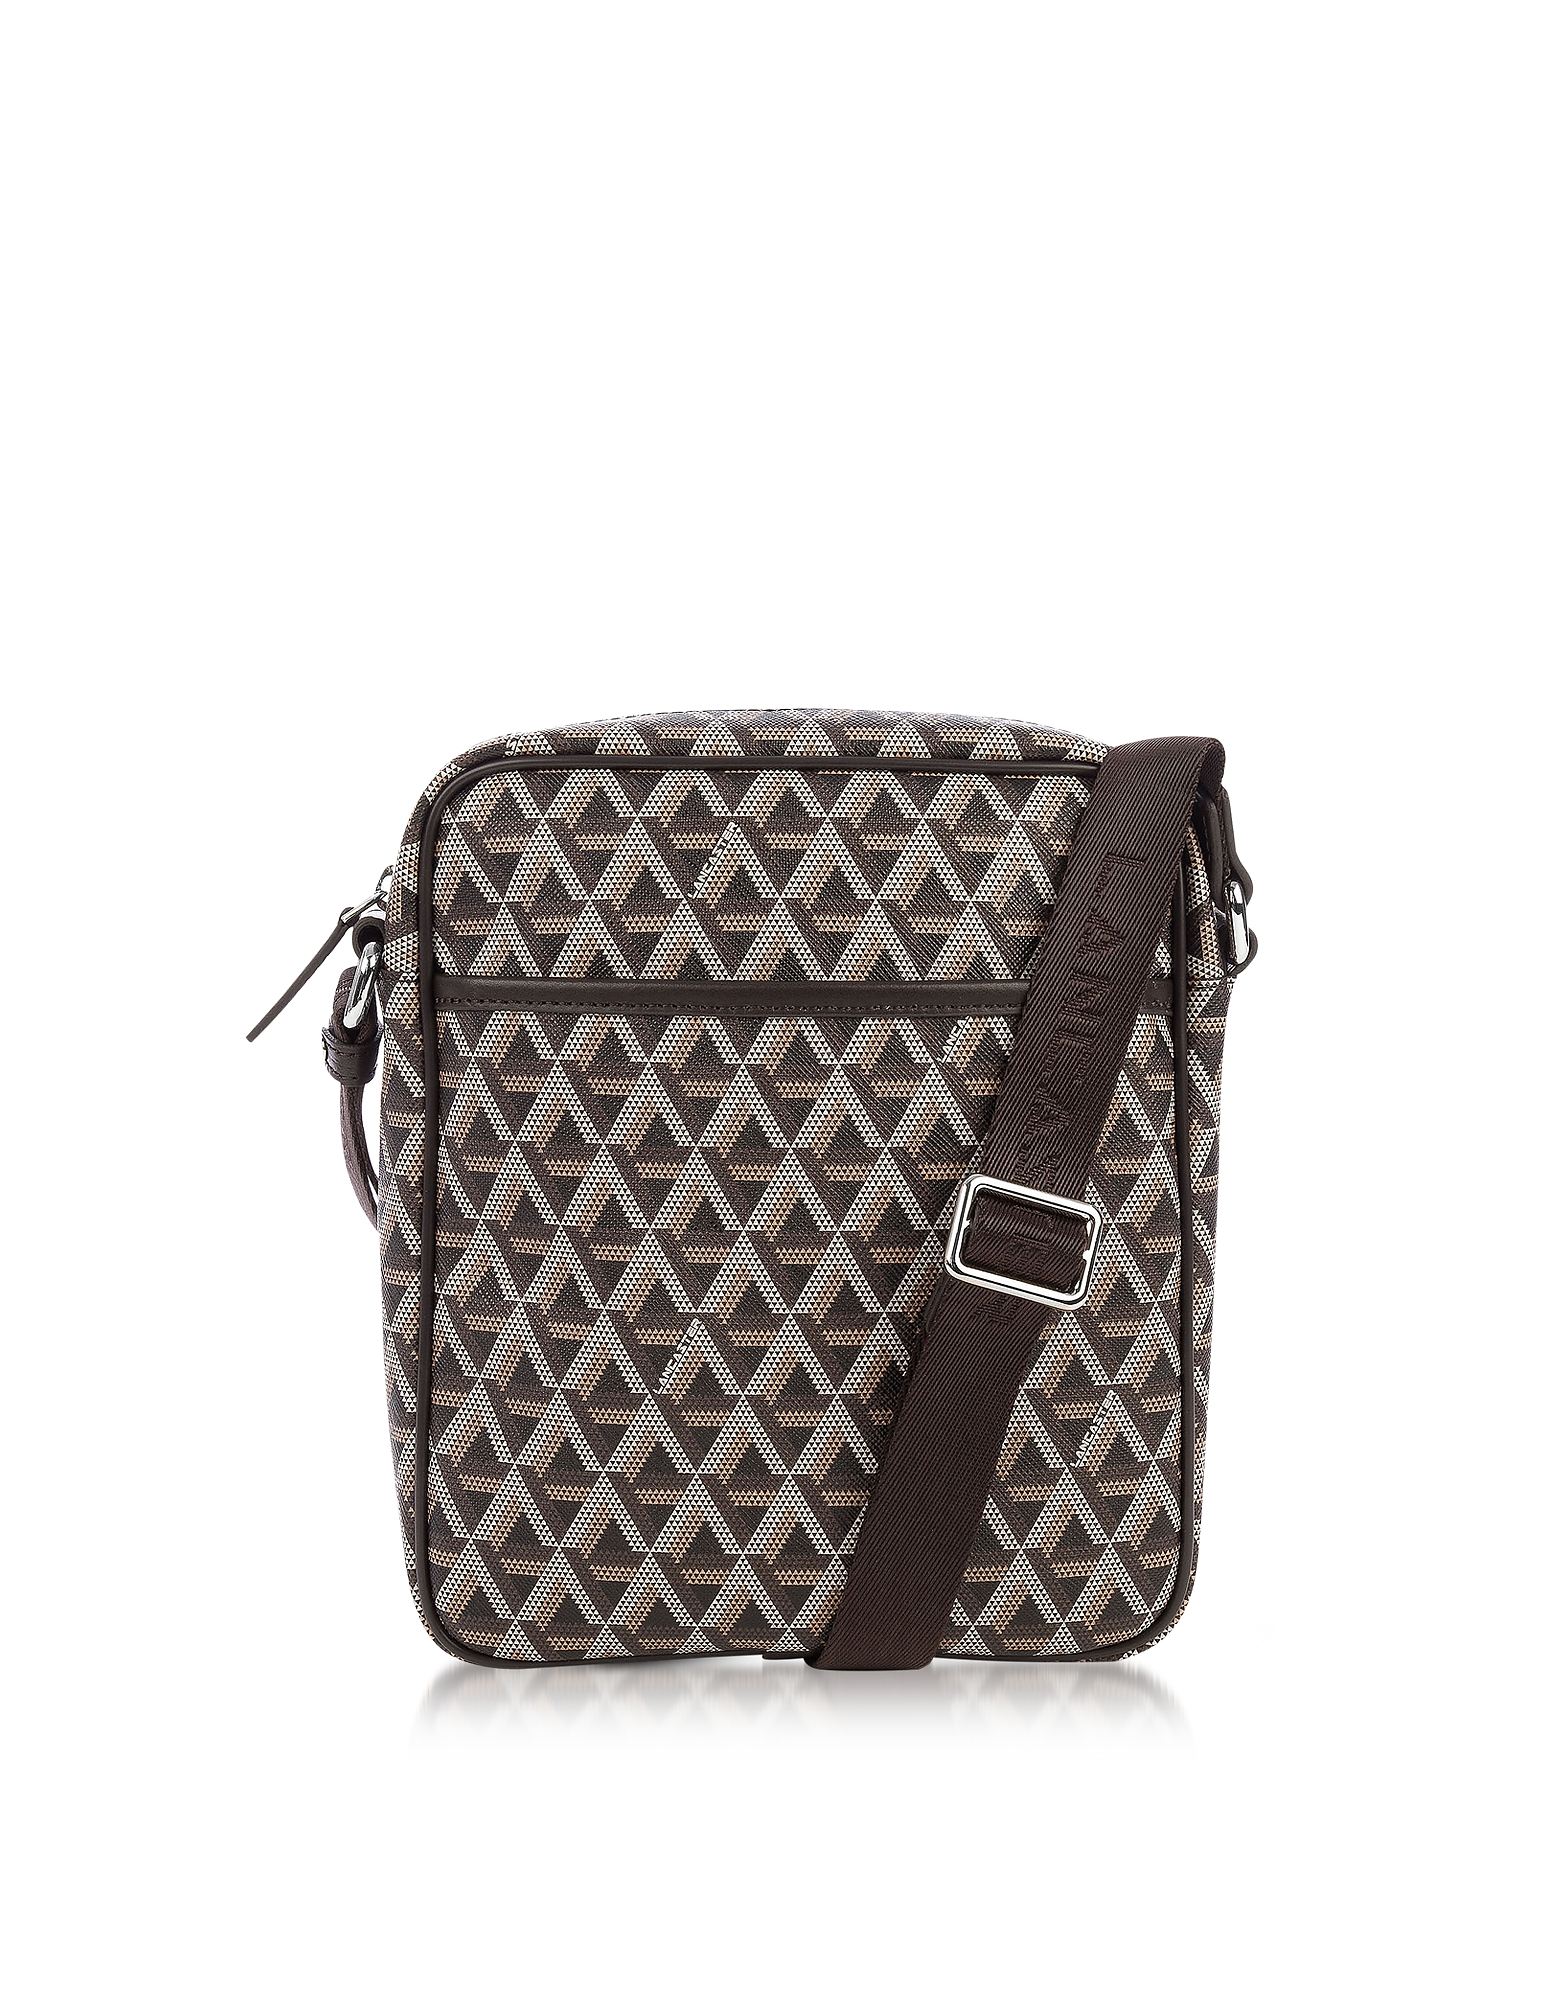 Lancaster Paris Men's Bags, Ikon Brown Coated Canvas Men's Crossbody Bag